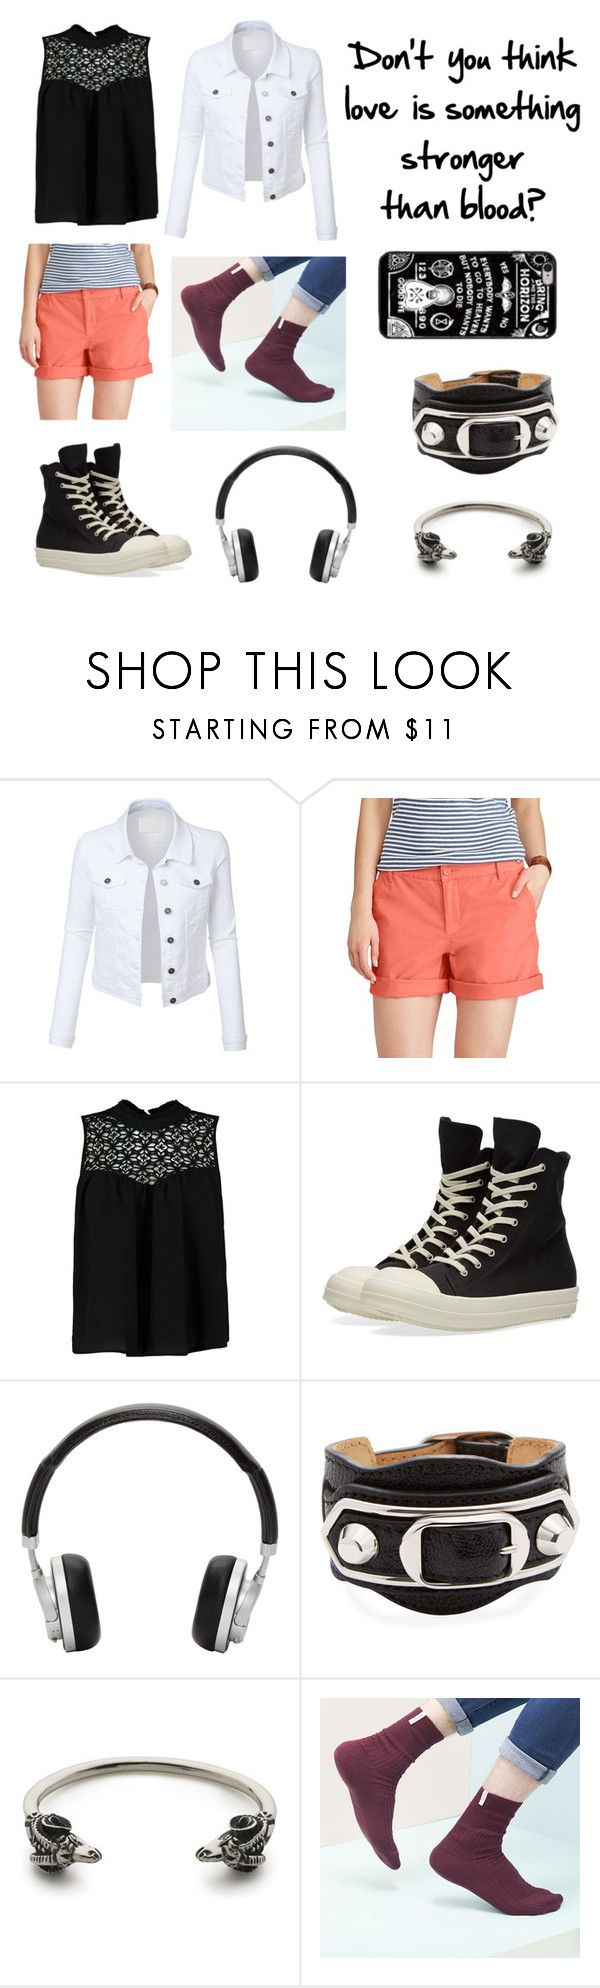 """Dead of summer OC - Cecily 3"" by theultimatefashionlover on Polyvore featuring mode, LE3NO, Chaps, Boohoo, DRKSHDW, Master & Dynamic, Balenciaga, Kempink en Hot Topic"